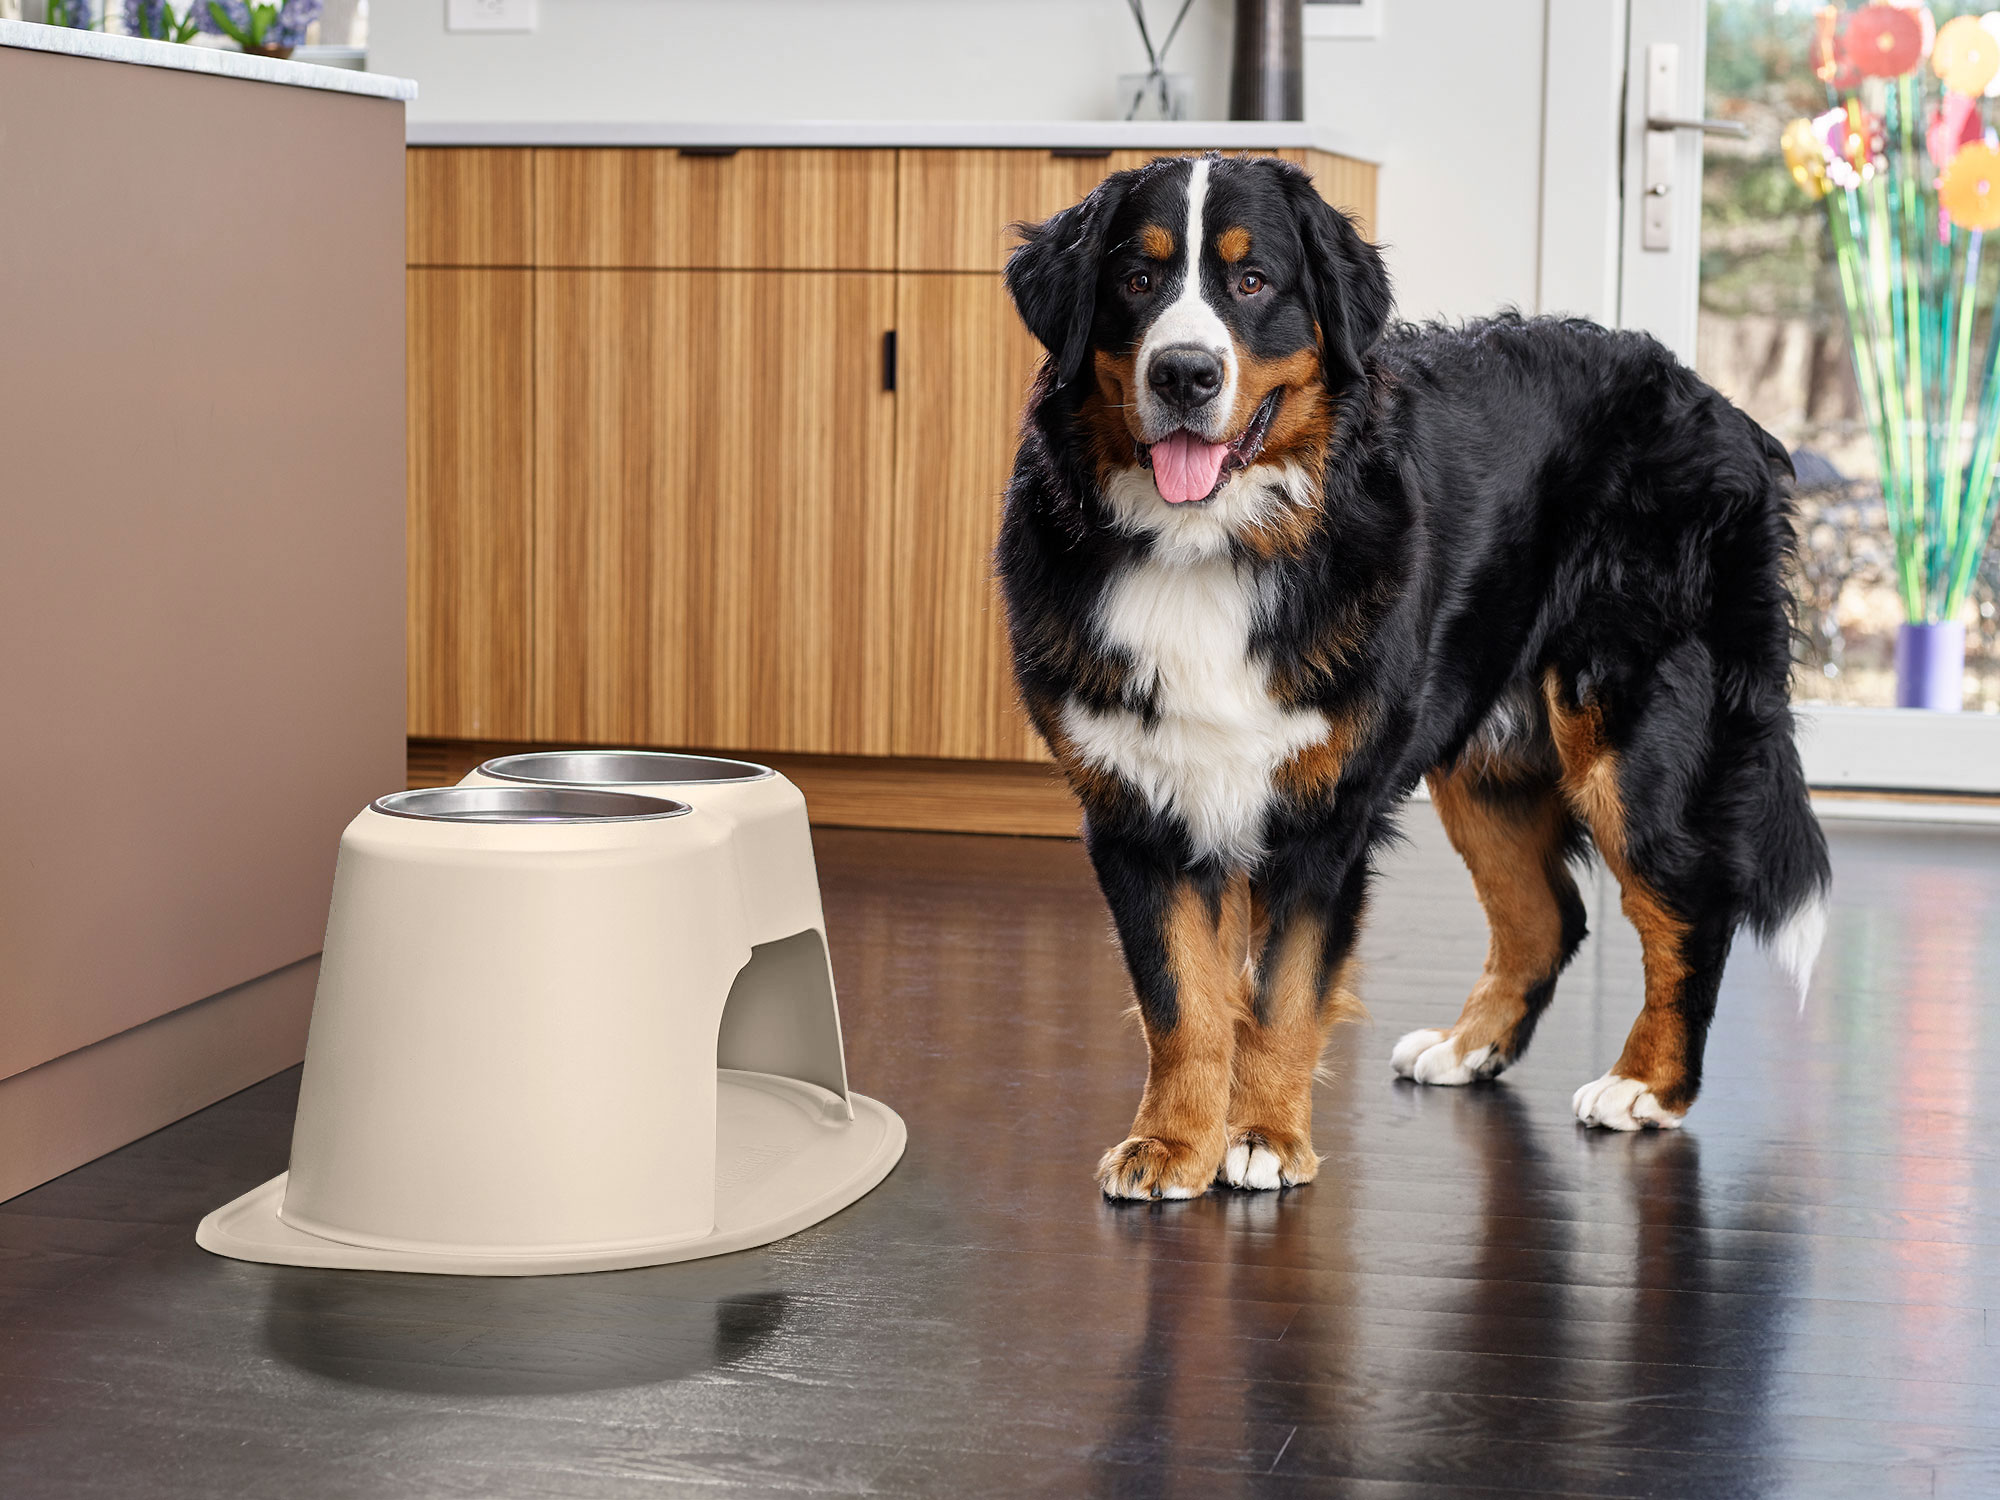 WeatherTech dog bowls fit perfectly into the feeding station's elevated stand and mat.